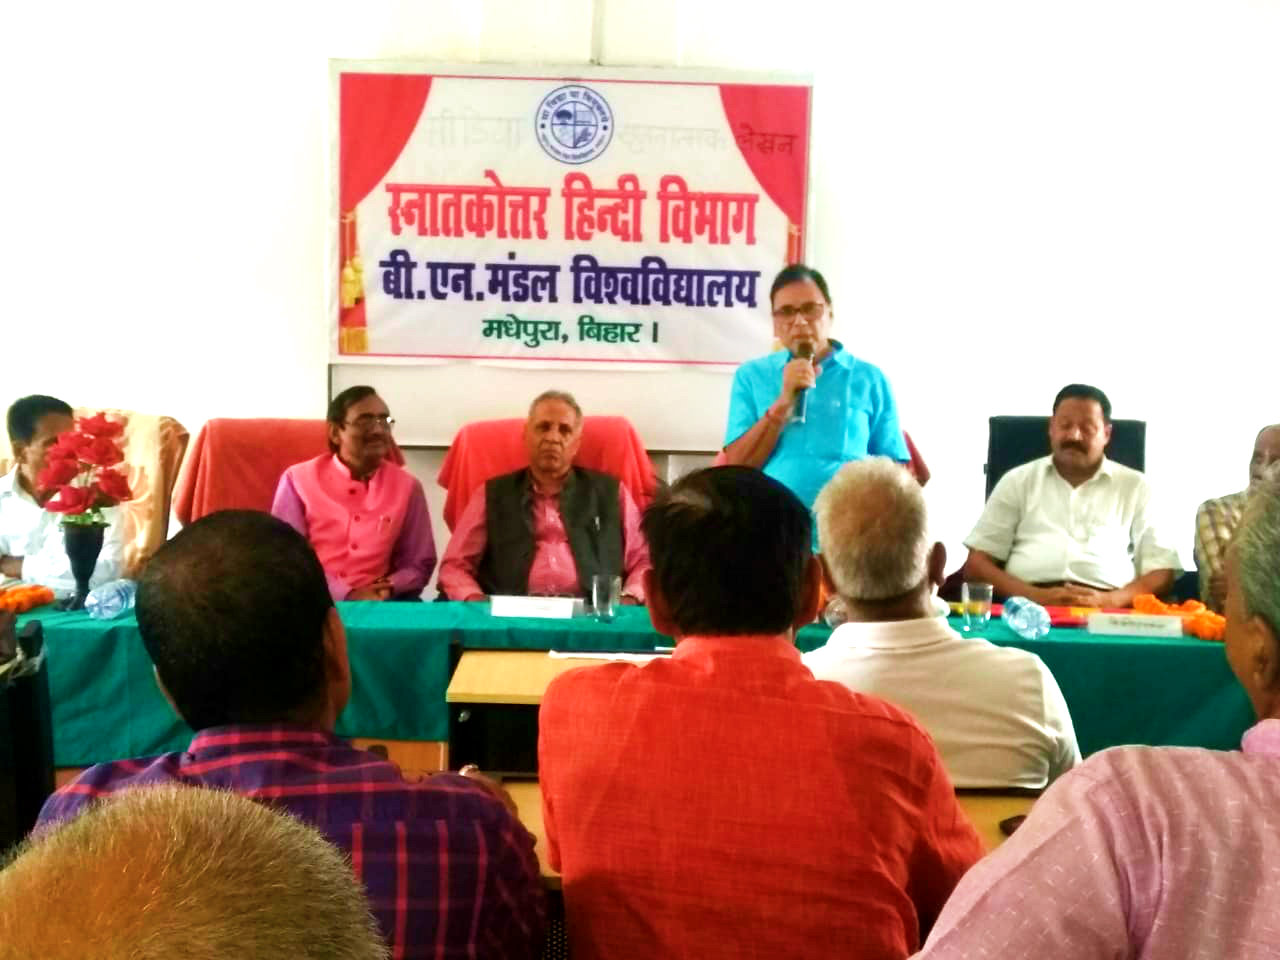 Dr.Madhepuri addressing the seminar on